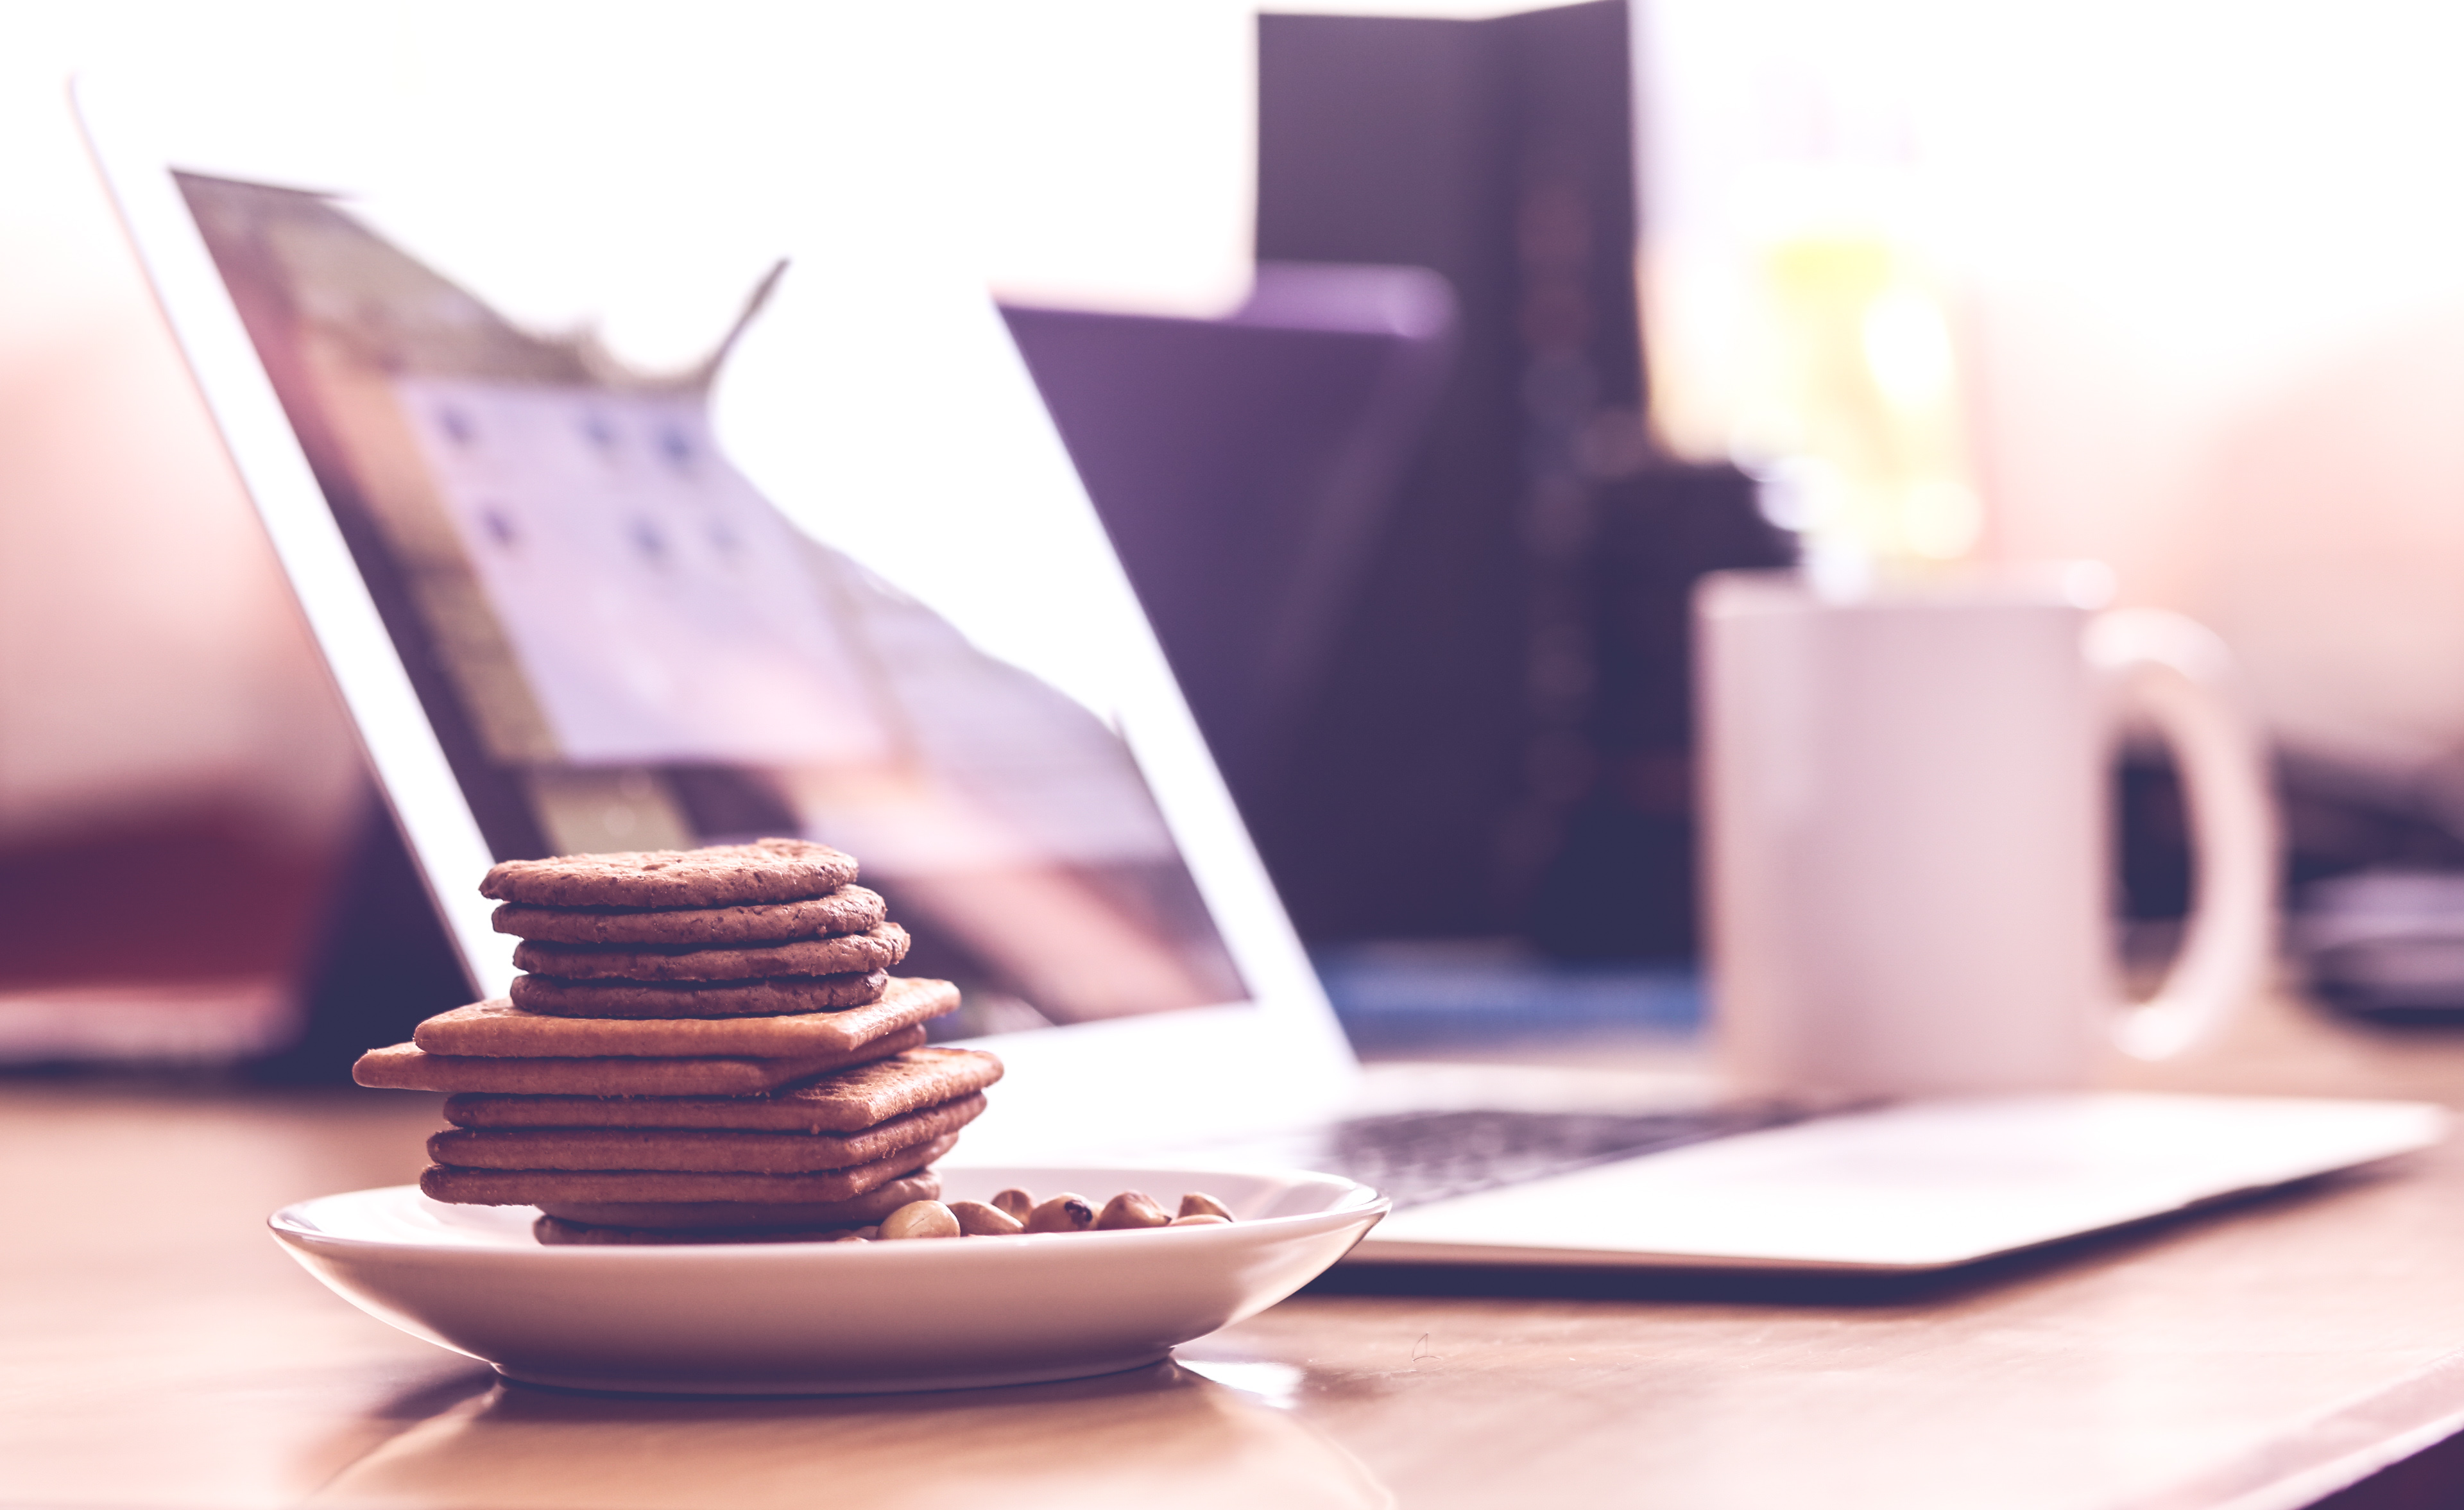 Biscuits In White Saucer 183 Free Stock Photo